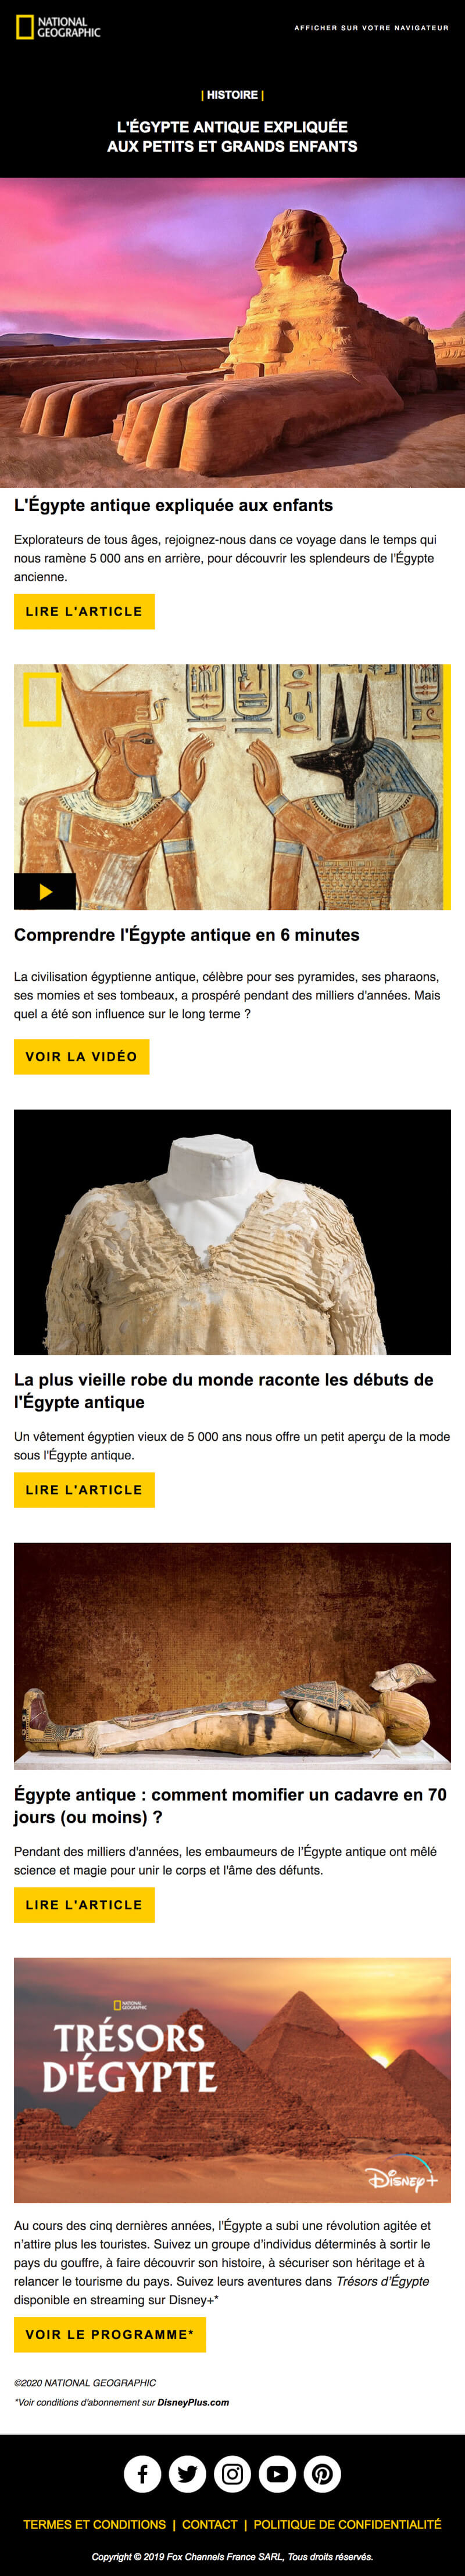 Newsletter National Geographic - Histoire